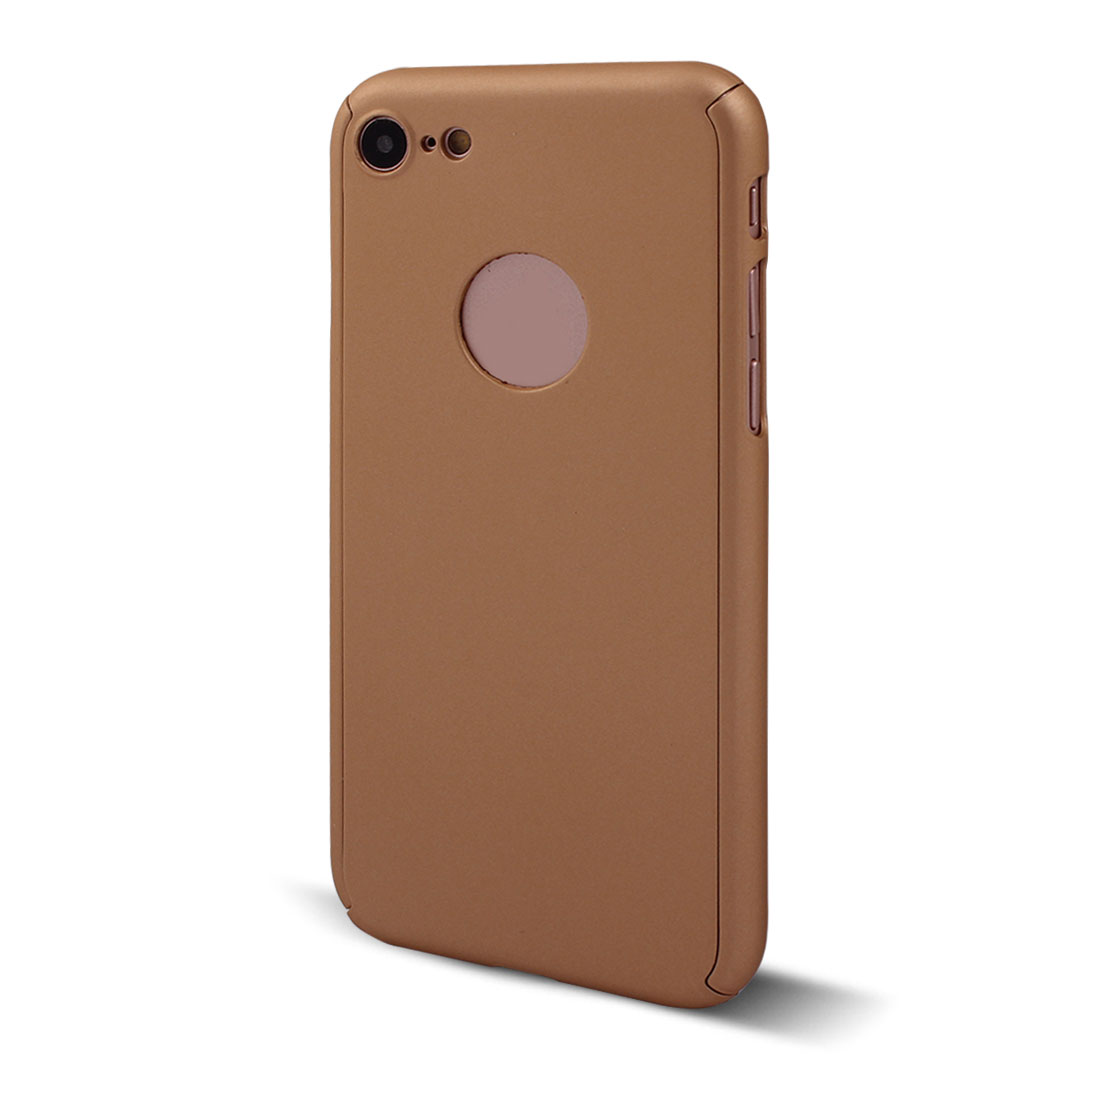 Polycarbonate 360 Degree Full Body Phone Case Gold Tone for iPhone 7